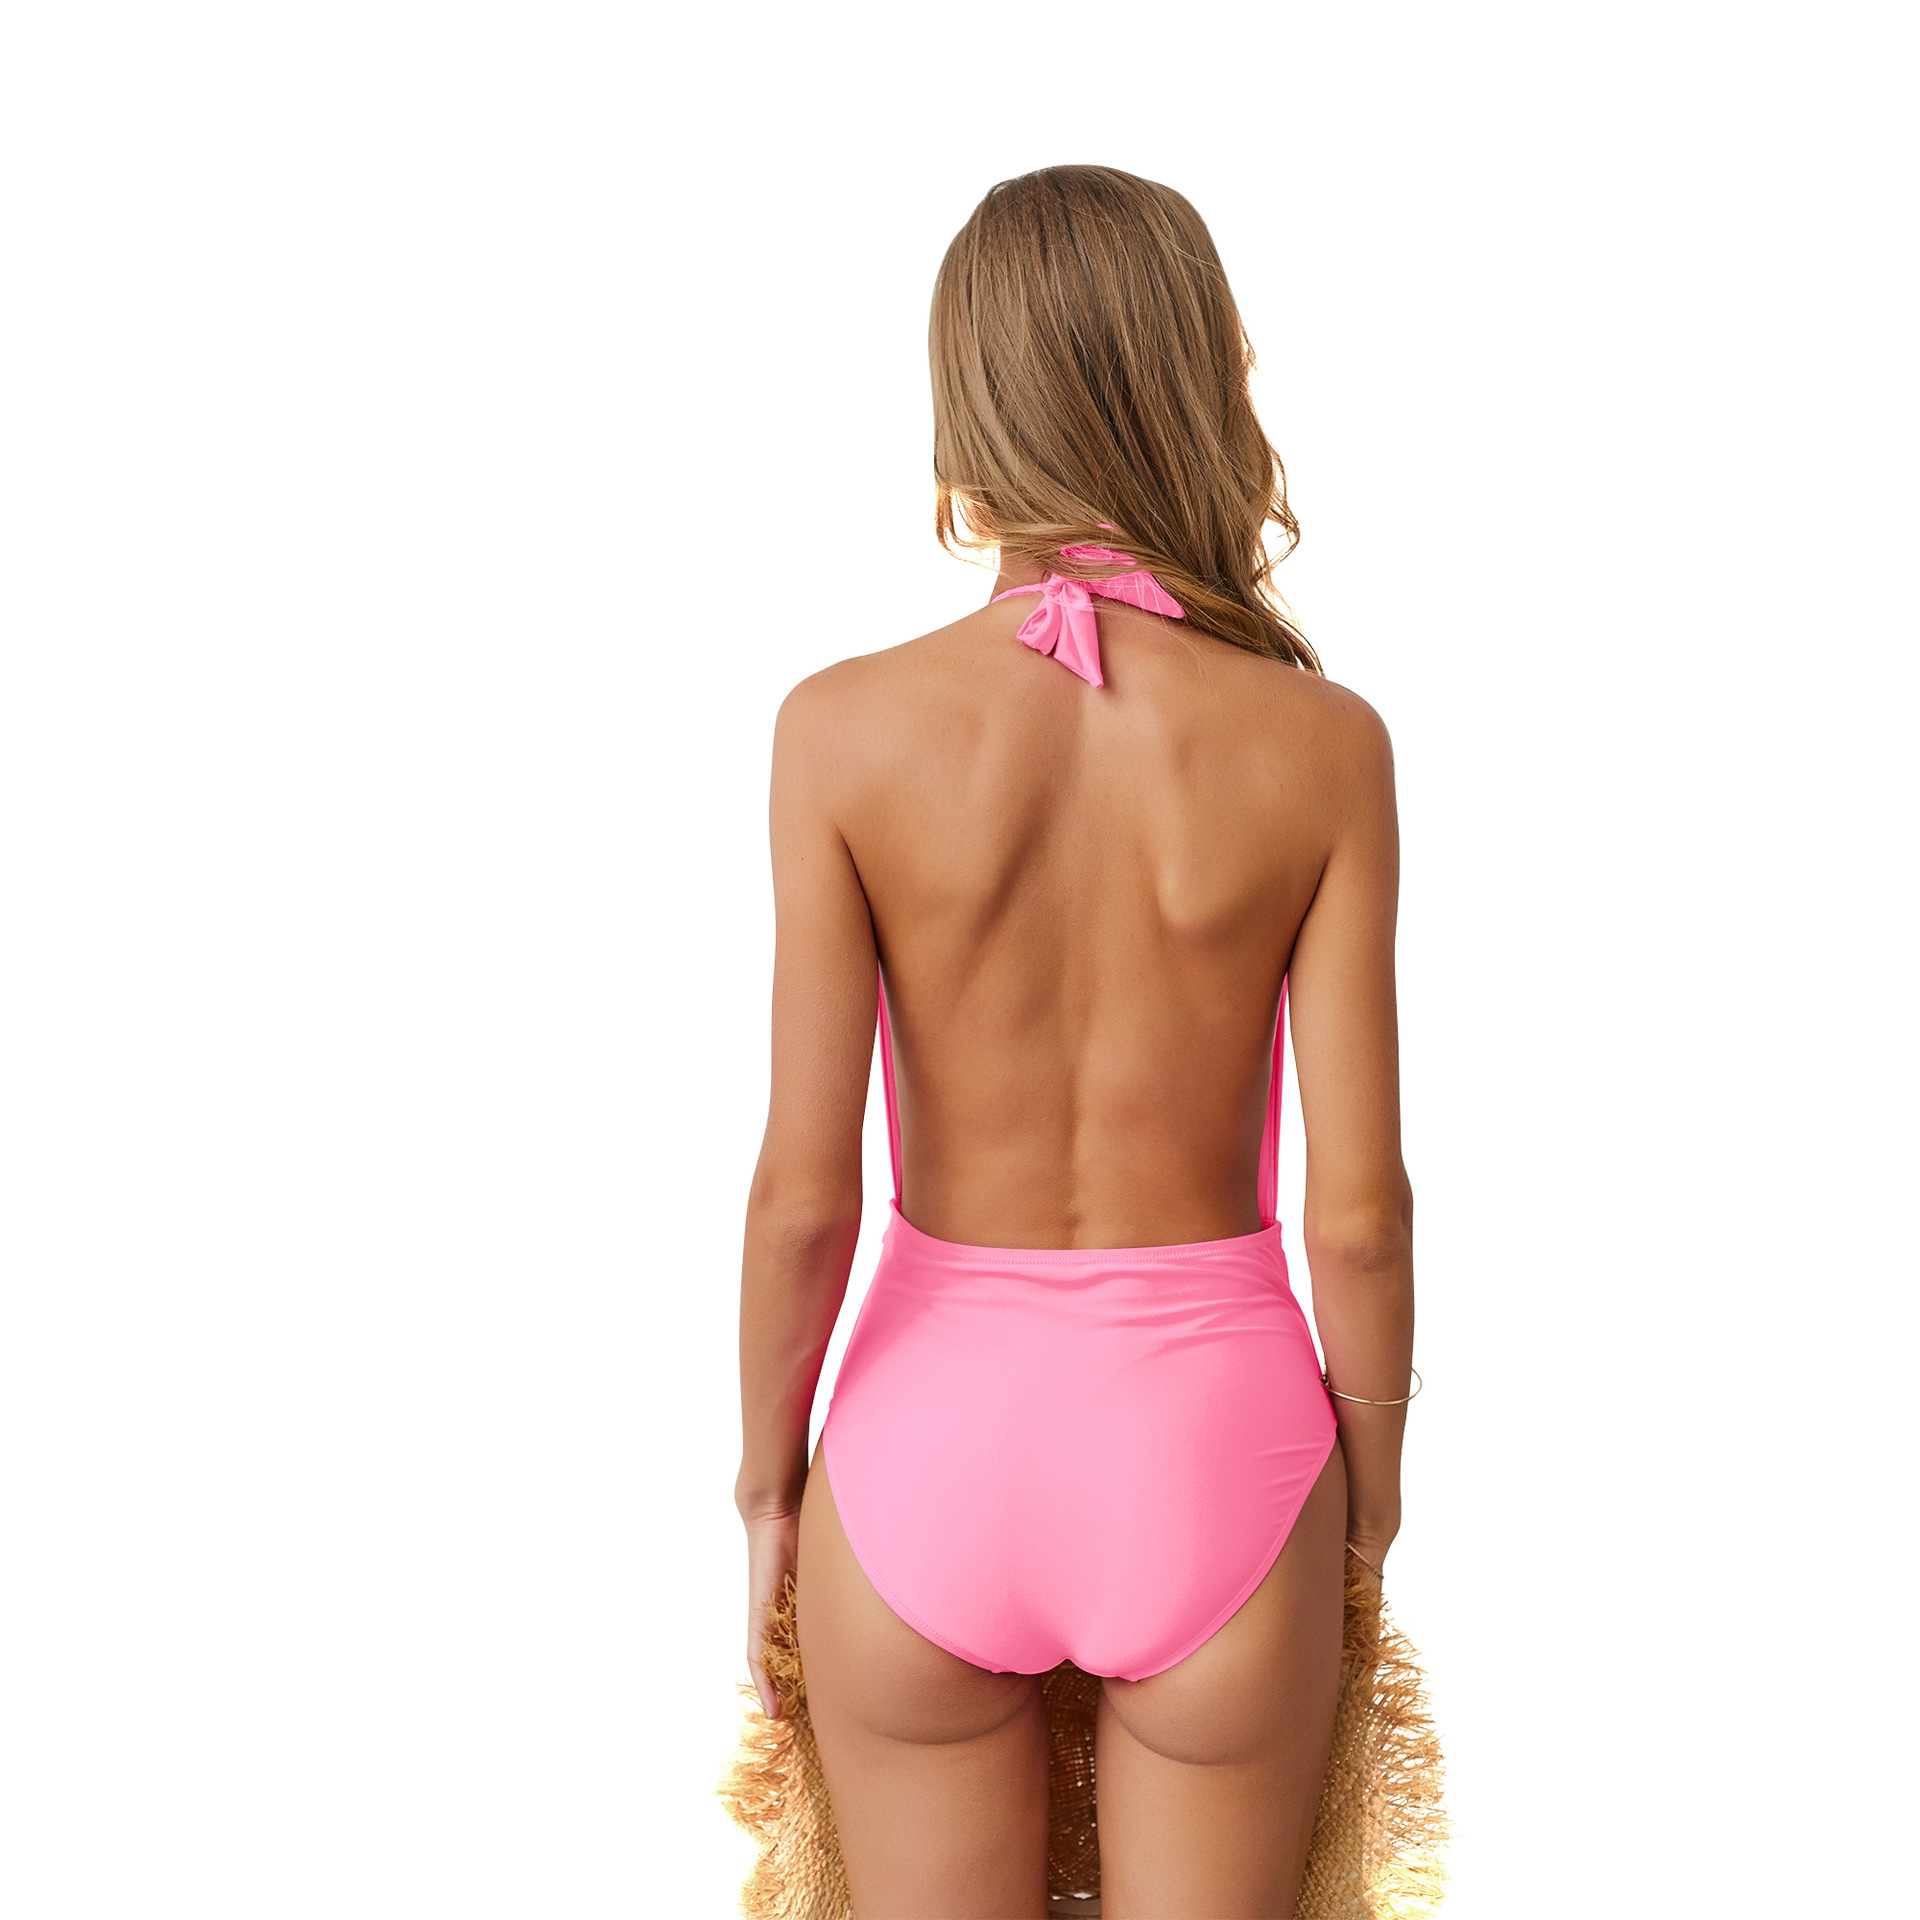 Sexy summer Swimsuit Women Swimwear One Piece Bodysuit Push Up Monokini Halter Cross Bathing Suit Swim Suist Wear Female Bikini in Body Suits from Sports Entertainment